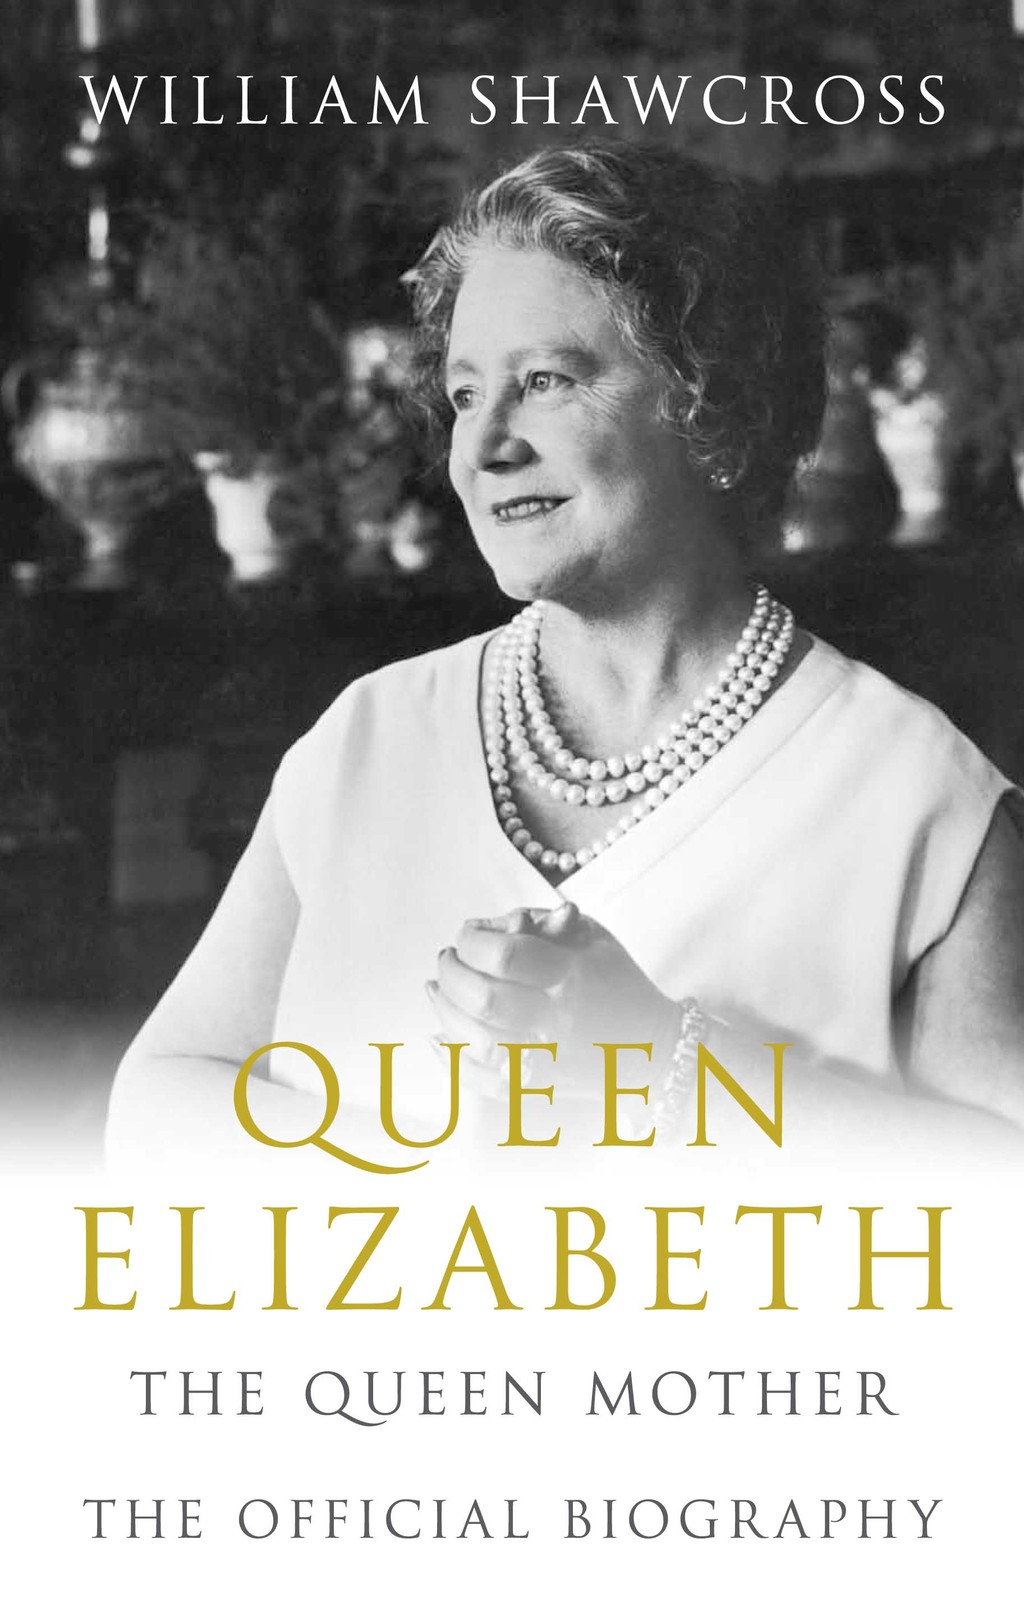 Queen Elizabeth the Queen Mother: The Official Biography The Official Biography